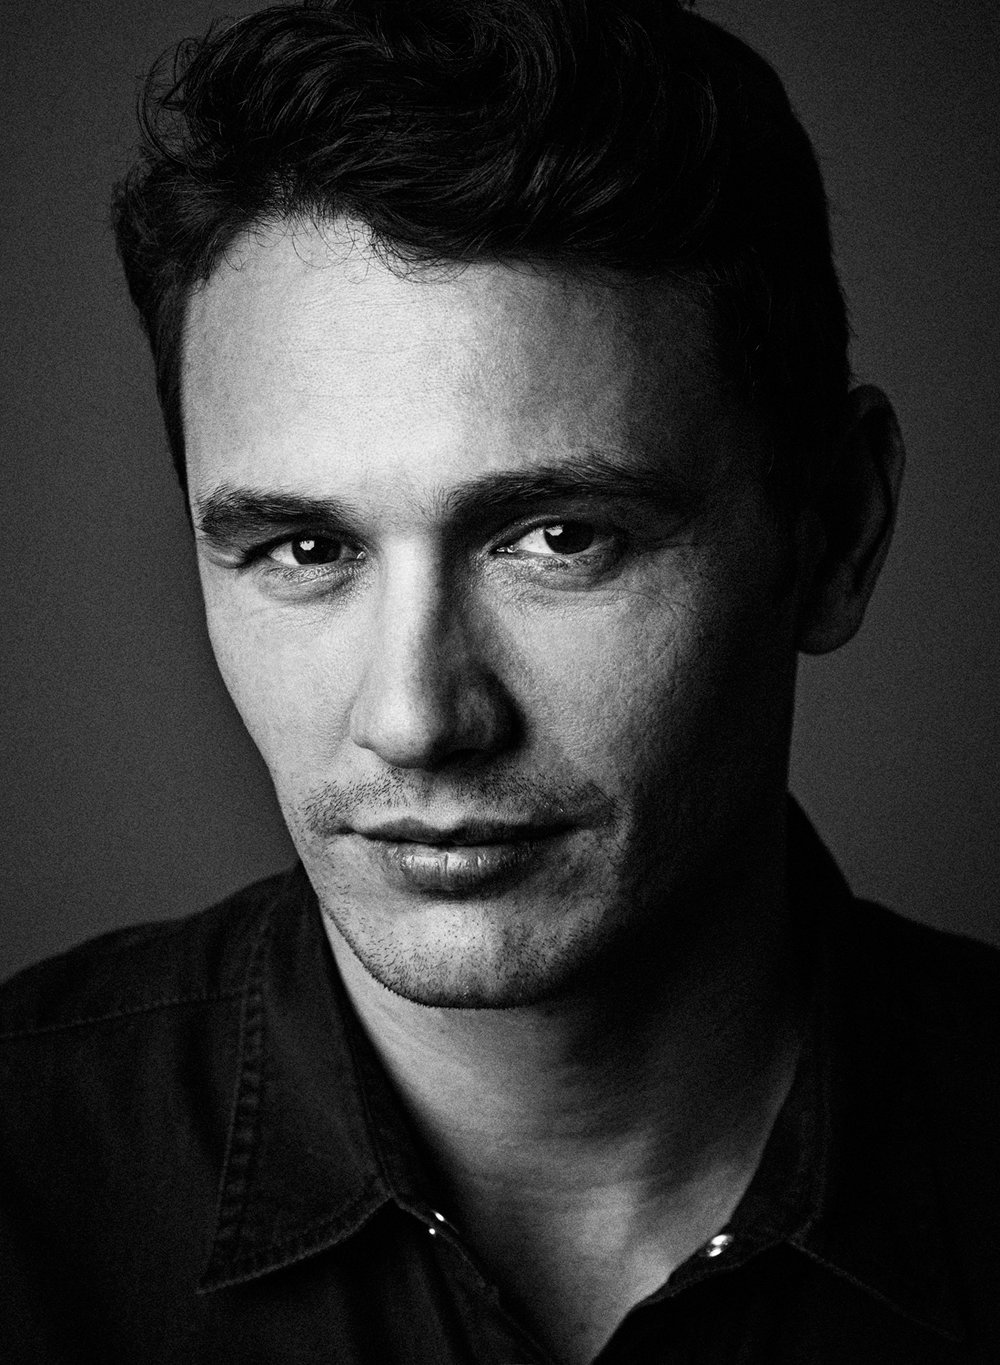 James-Franco-by-Steve-Schofield-3.jpg